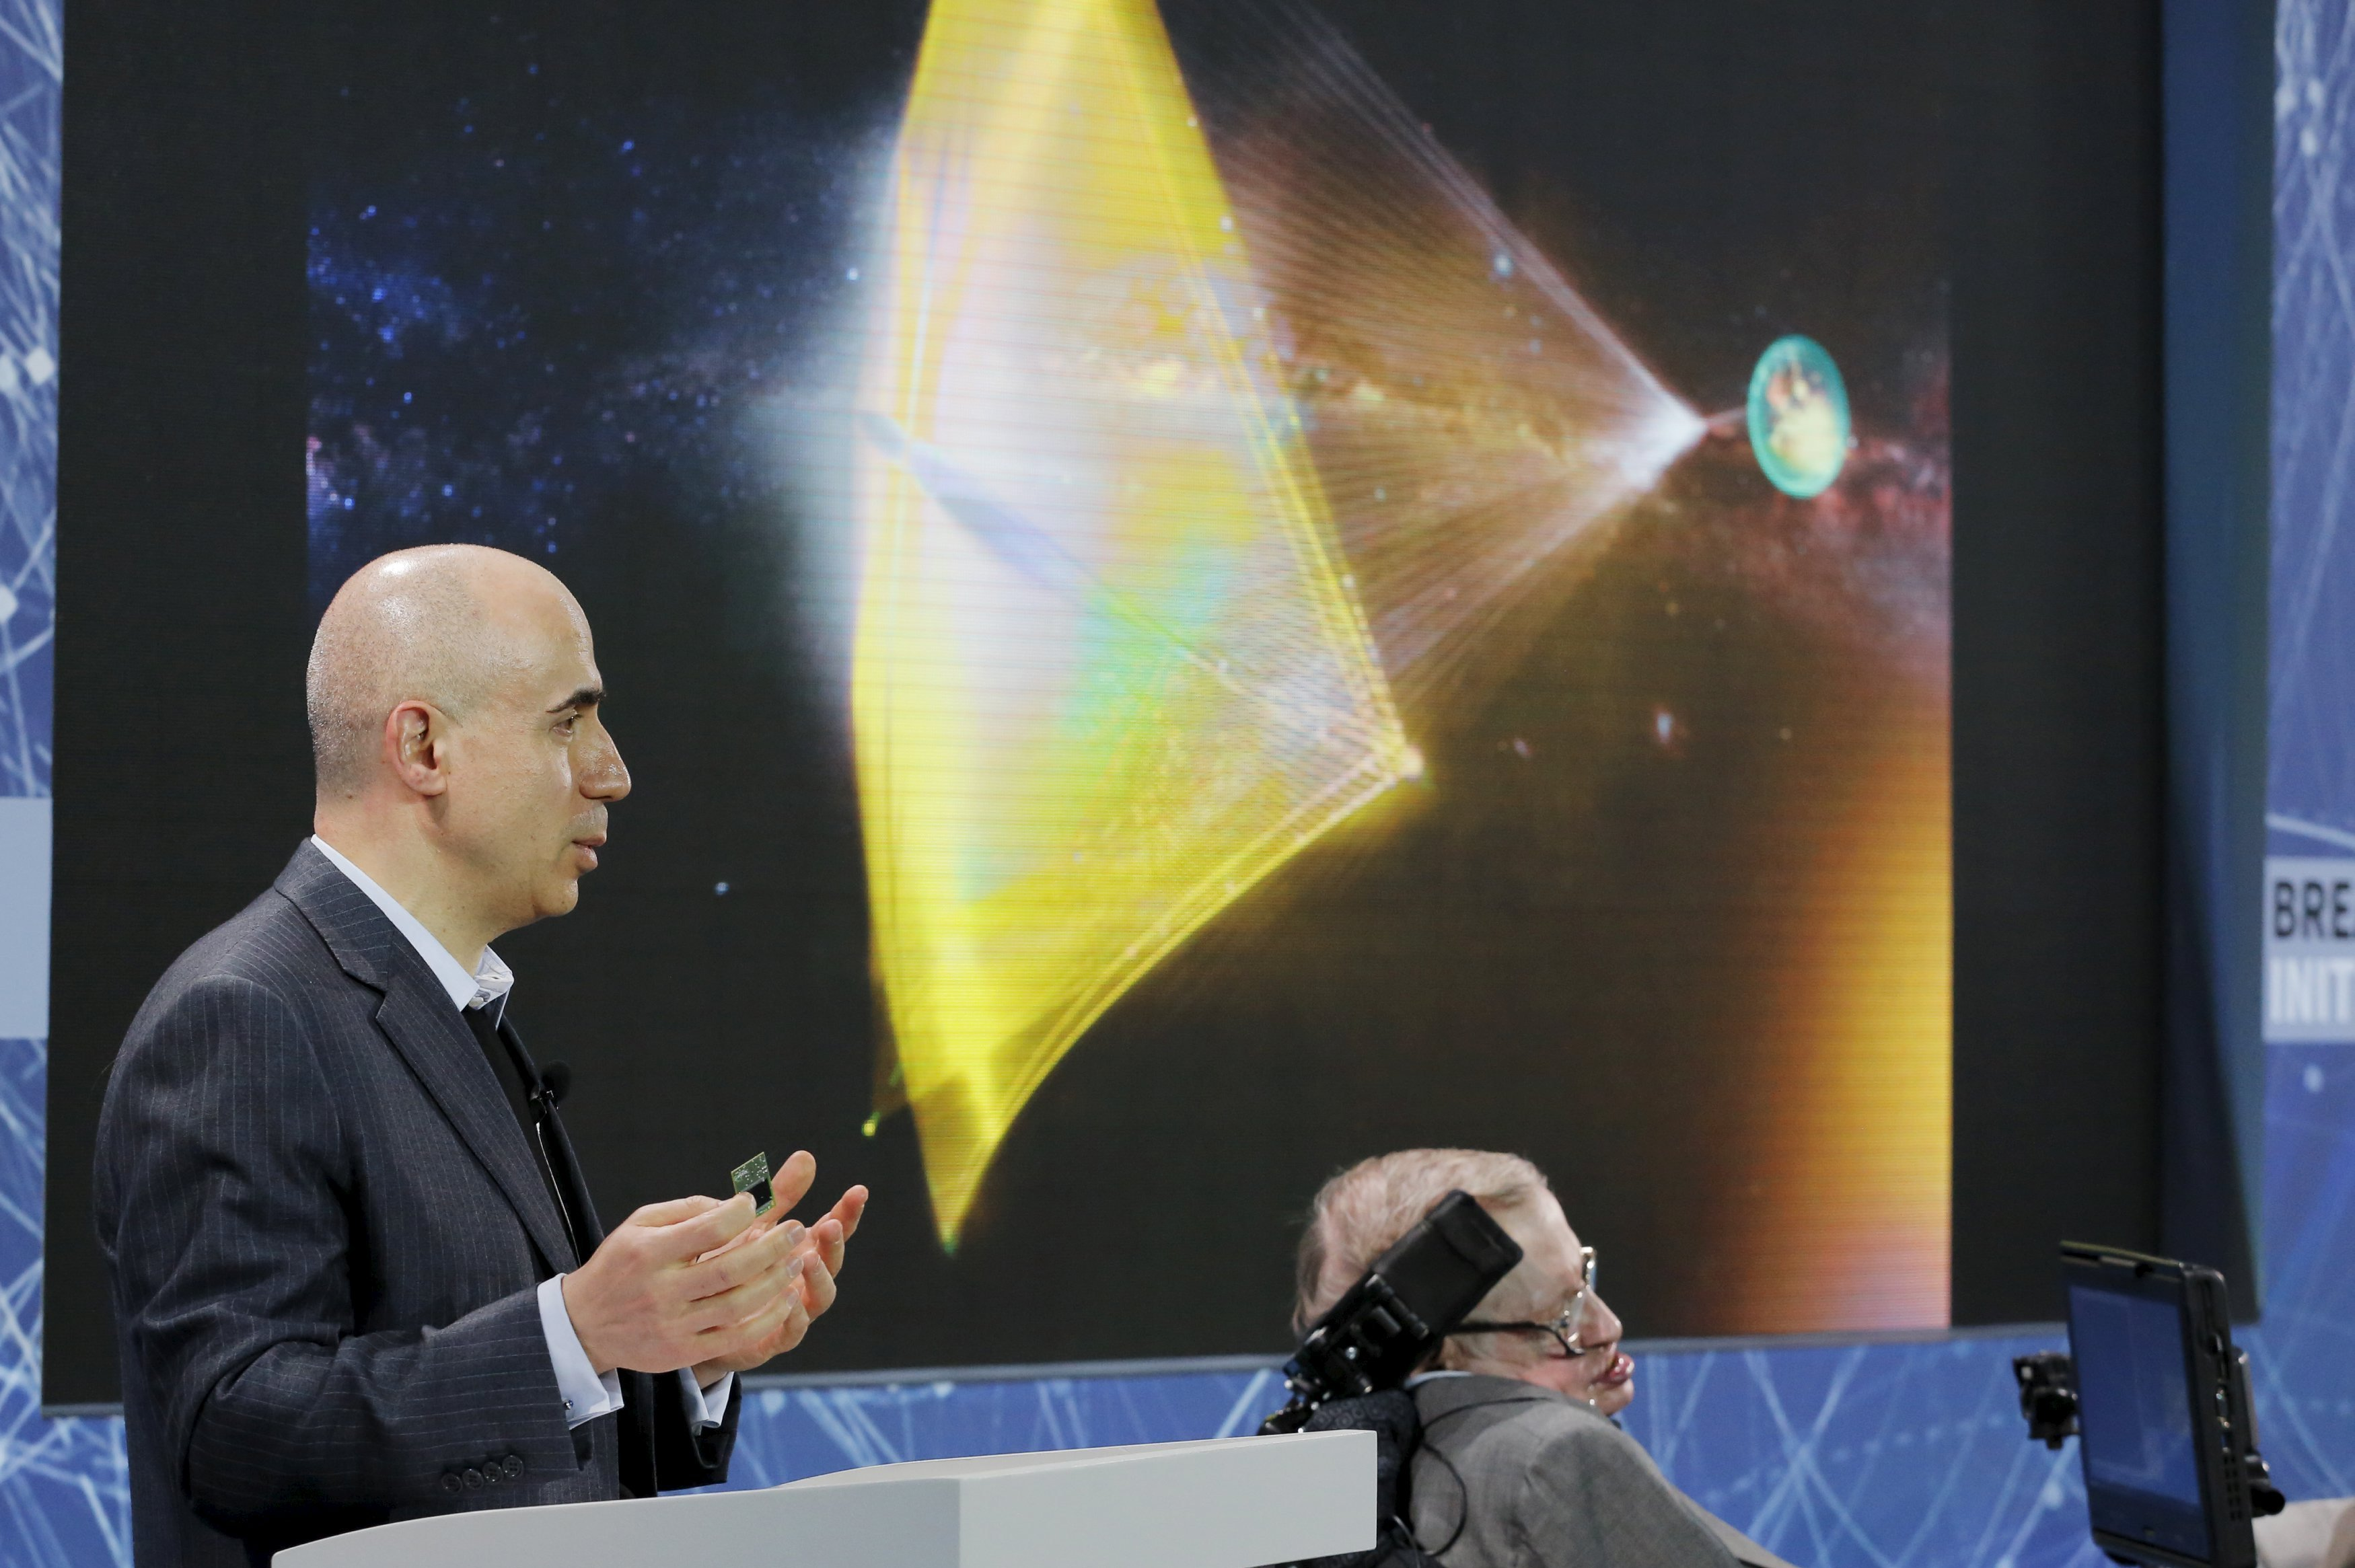 Investor Yuri Milner holds a small chip during an announcement of the Breakthrough Starshot initiative with physicist Stephen Hawking in New York April 12, 2016